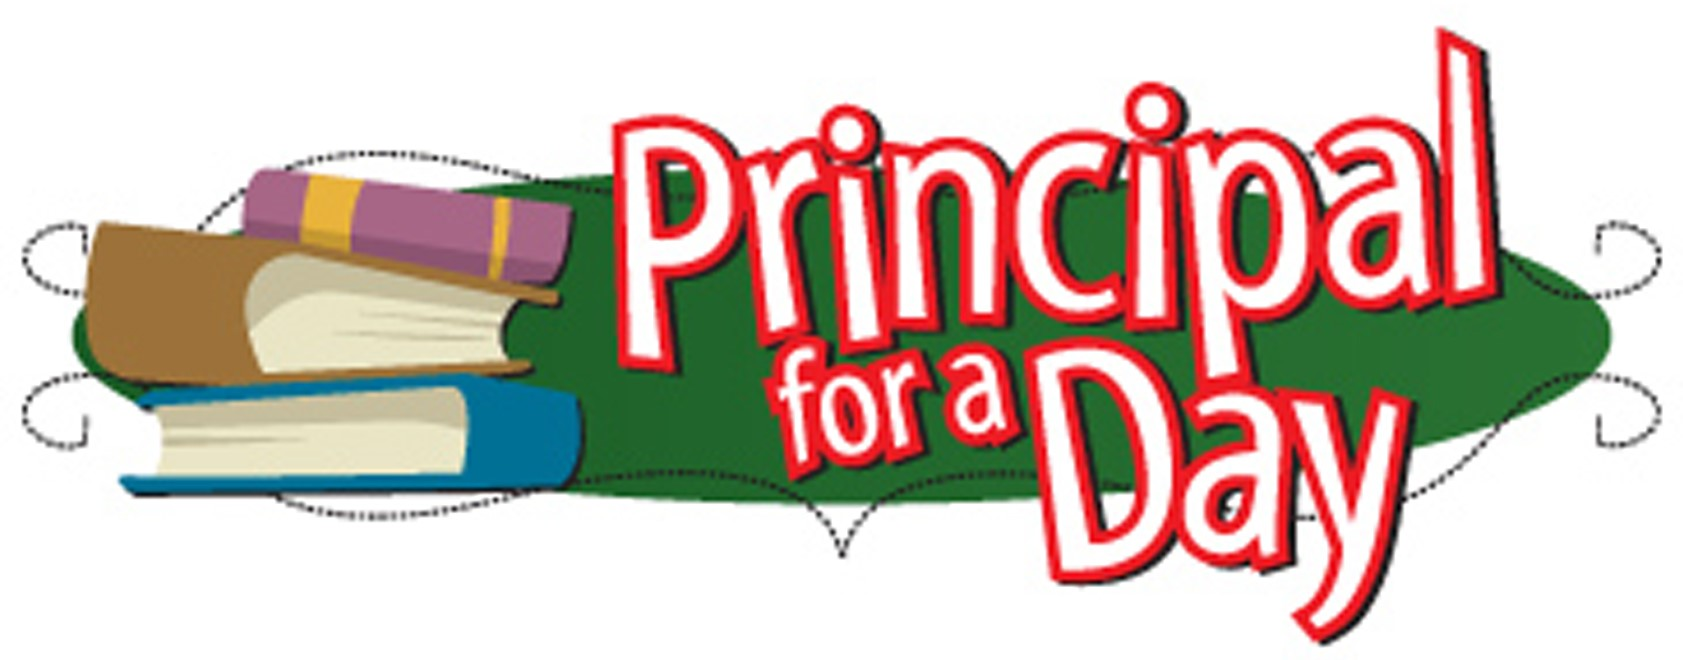 Principal for a Day with books graphic